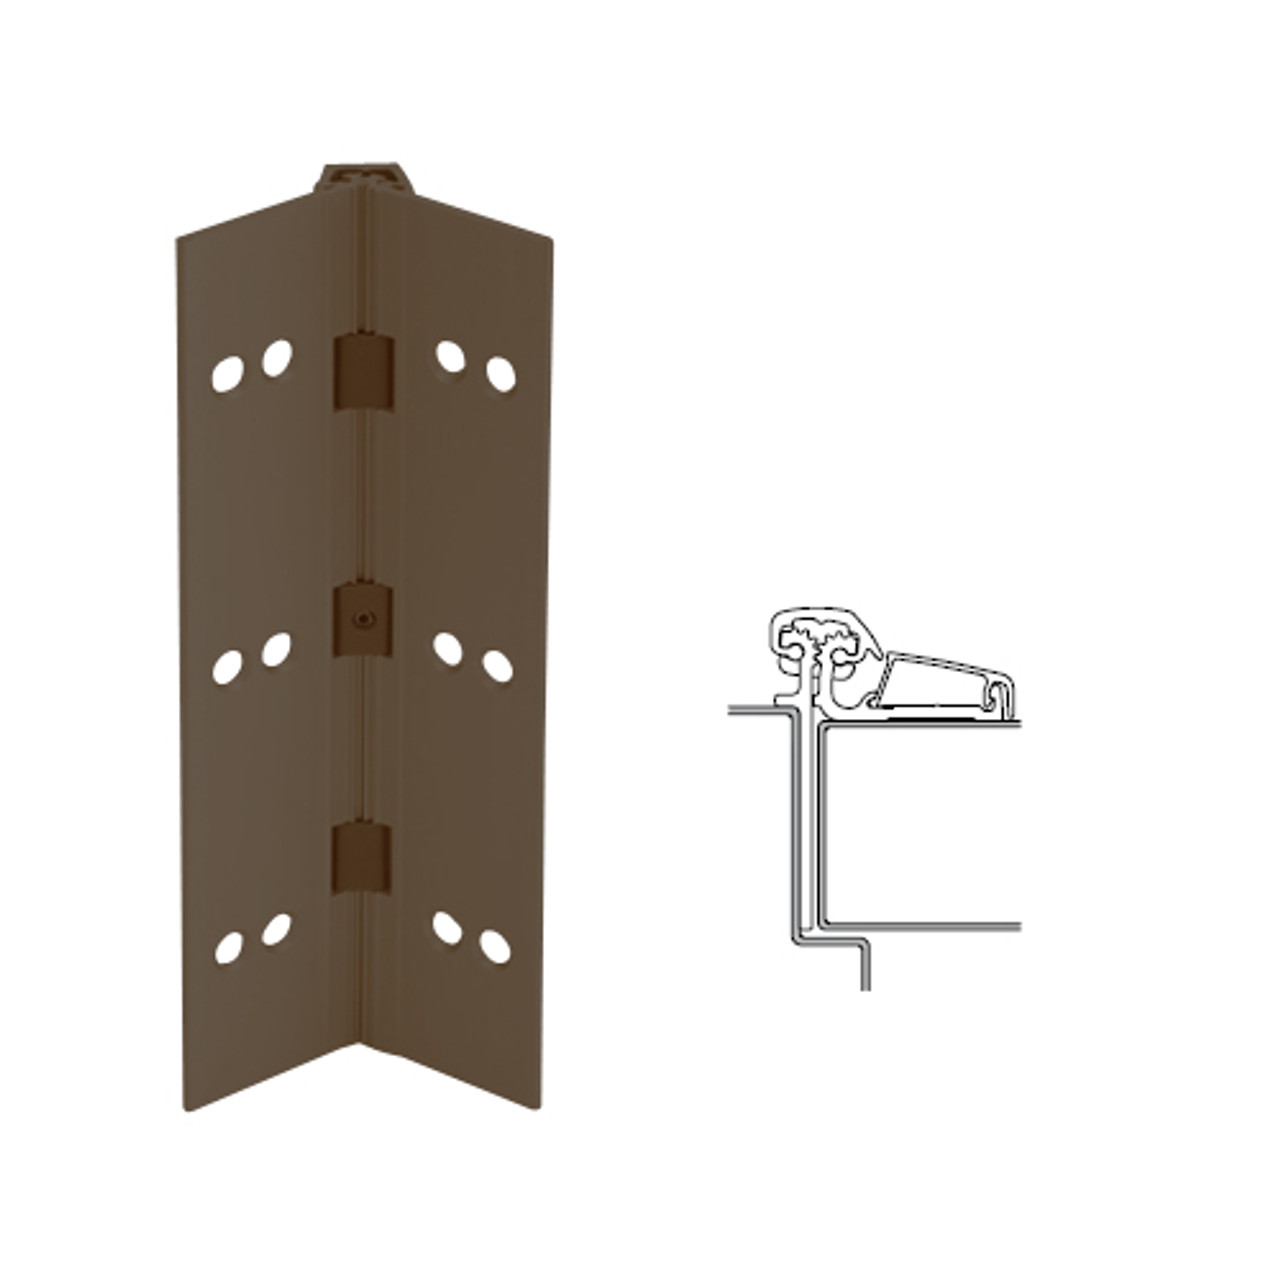 054XY-313AN-120-WD IVES Adjustable Half Surface Continuous Geared Hinges with Wood Screws in Dark Bronze Anodized